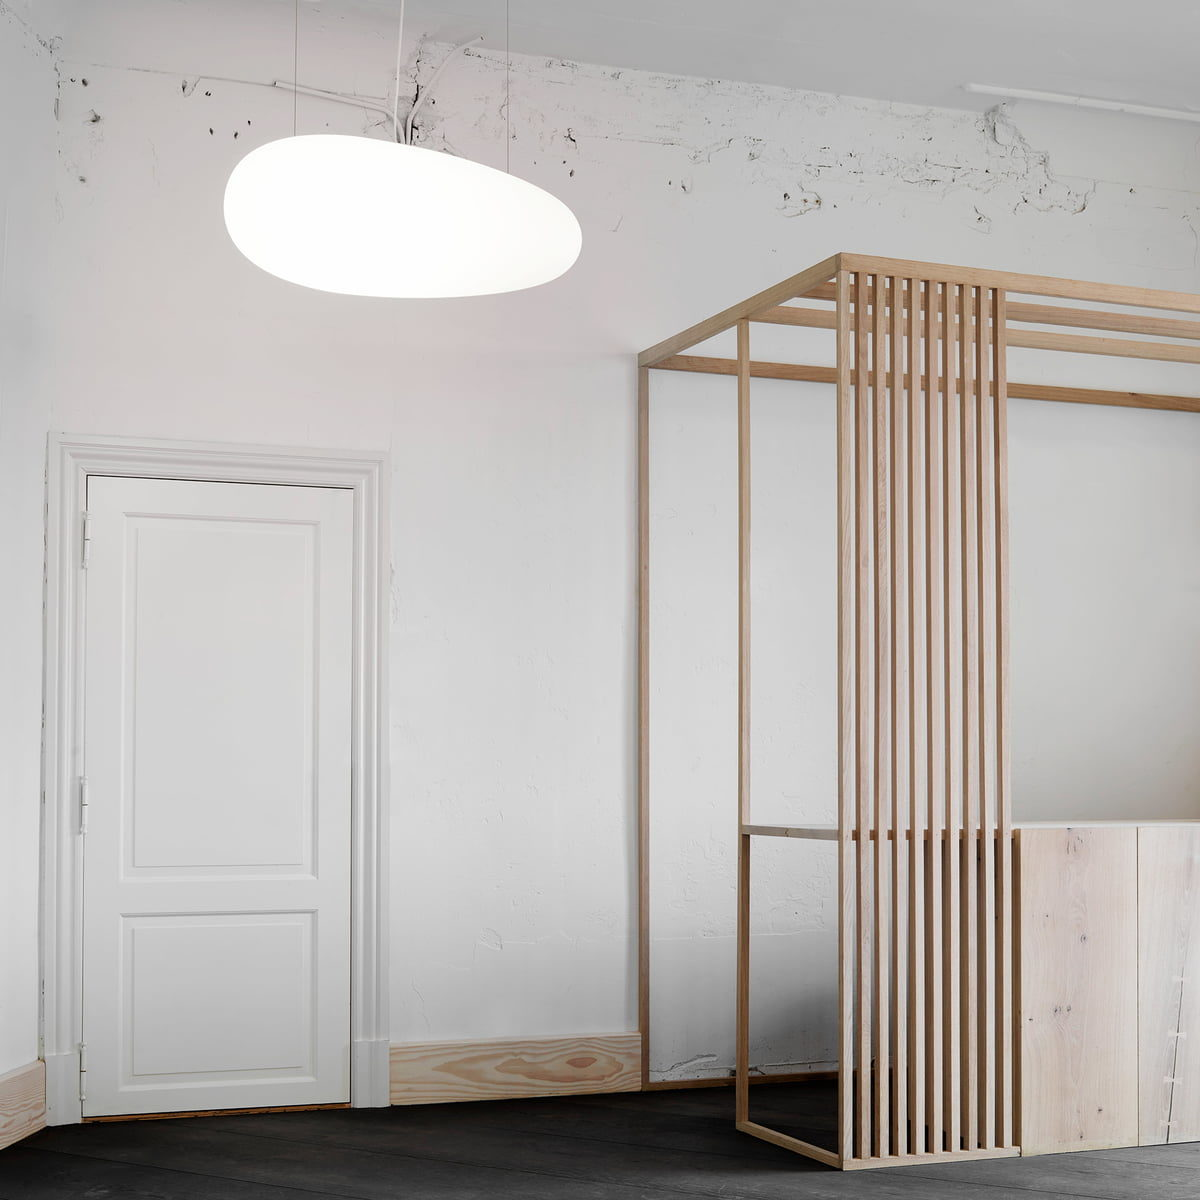 The House Project: Planung Lichtkonzept & Smart Home